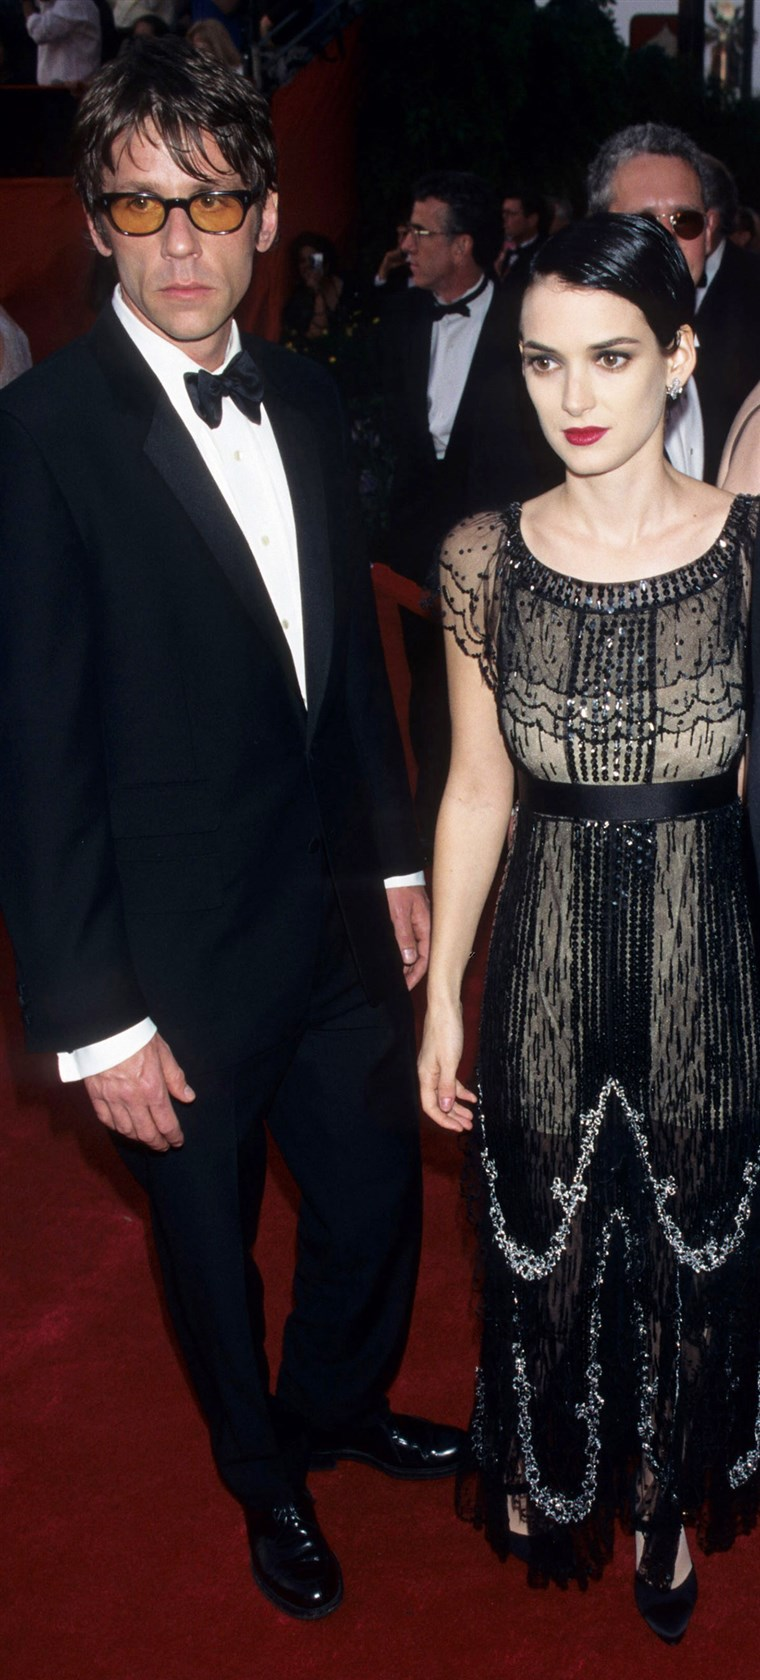 Winona Ryder and Kevin Healy